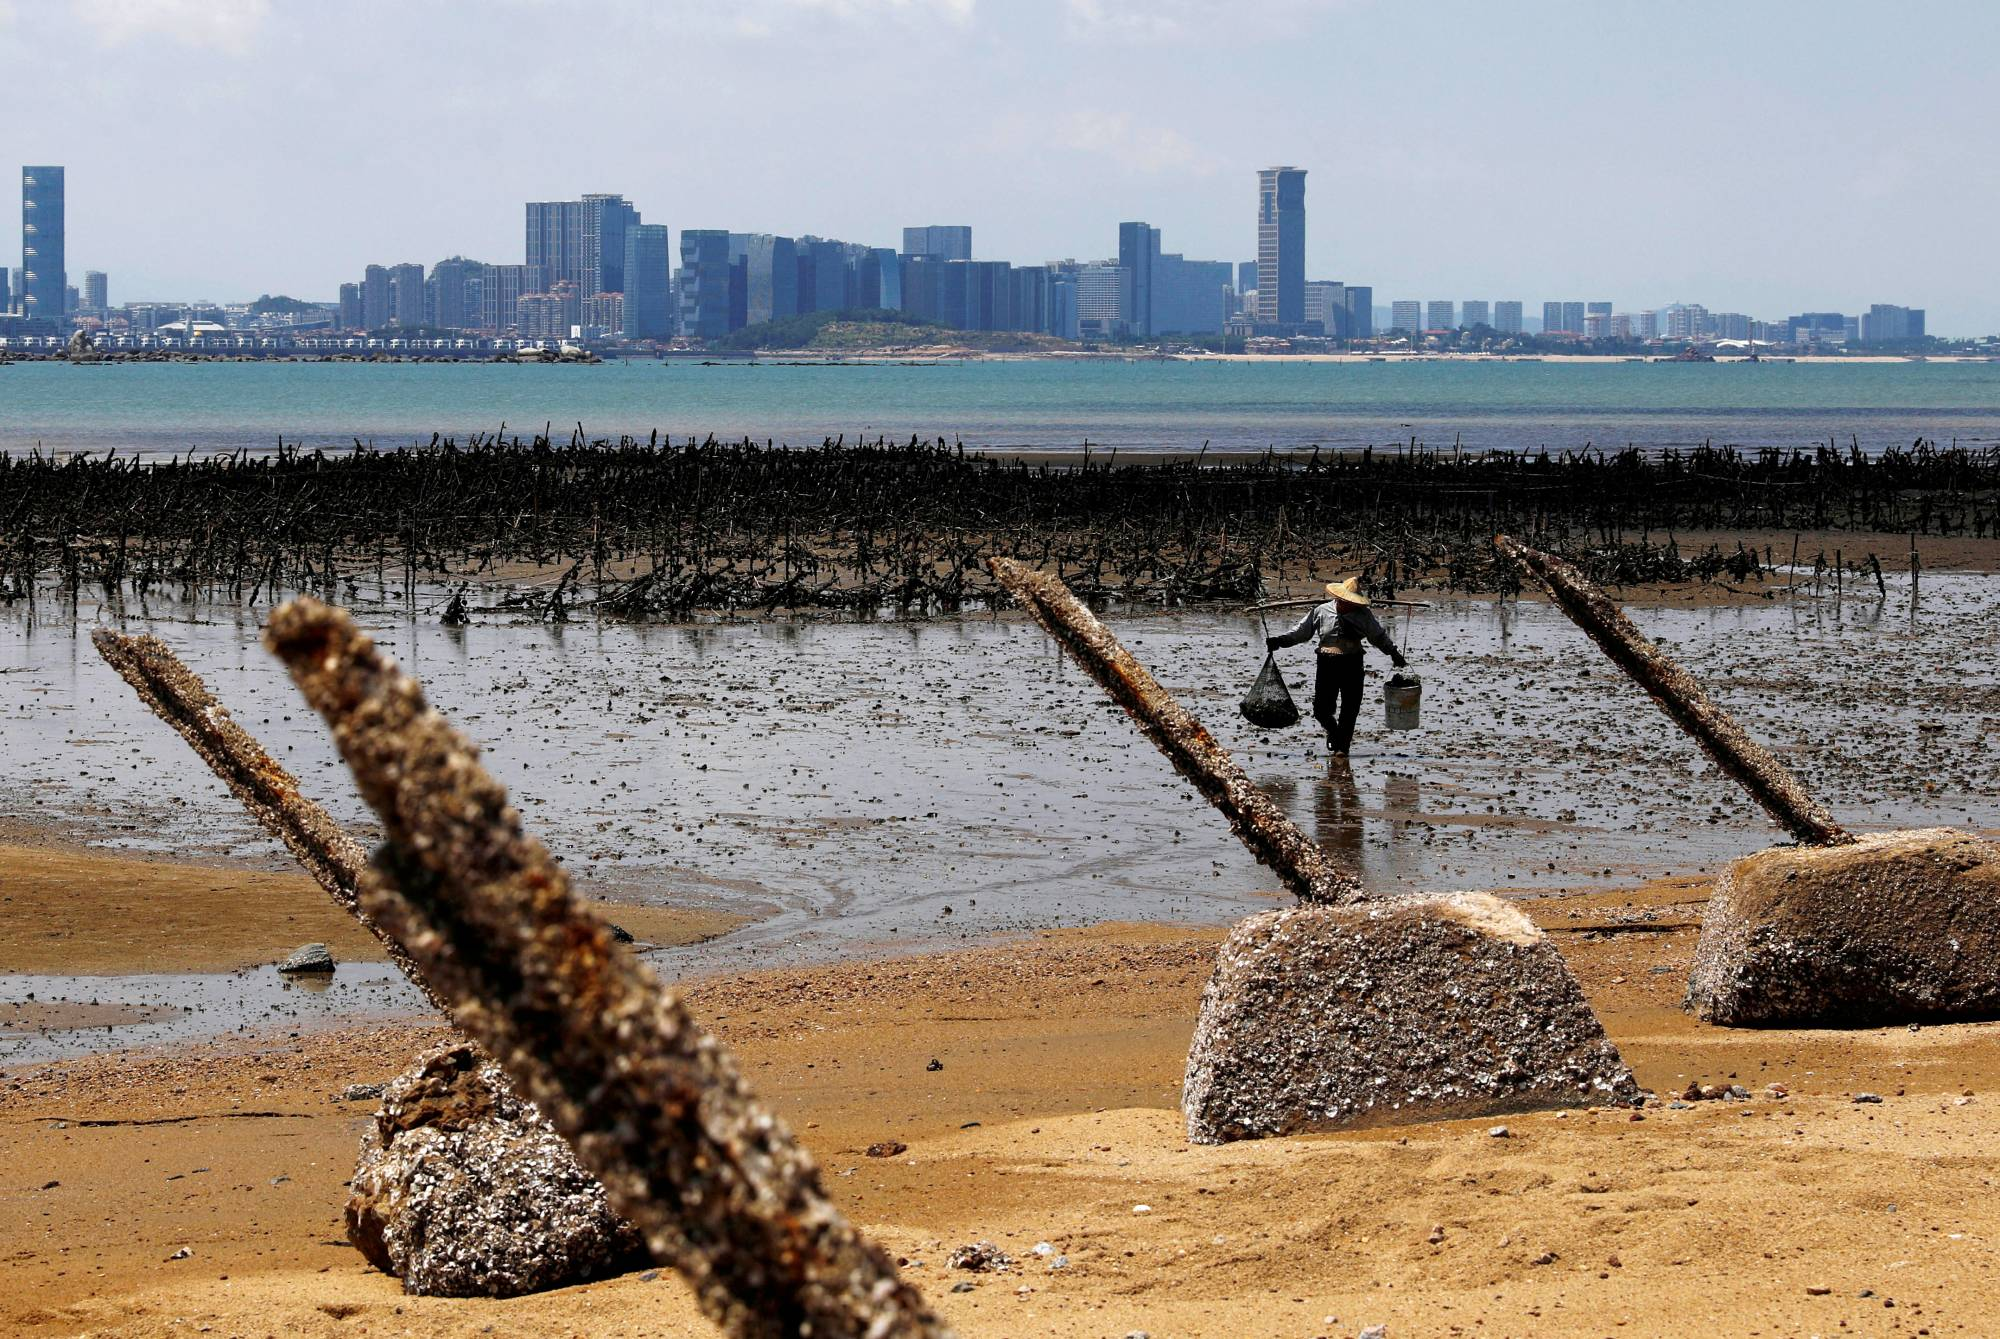 An oyster farmer walks in front of China's Xiamen, ahead of the 60th anniversary of the Second Taiwan Straits Crisis against China, on Lieyu Island, Kinmen County, Taiwan, in August 2018. | REUTERS